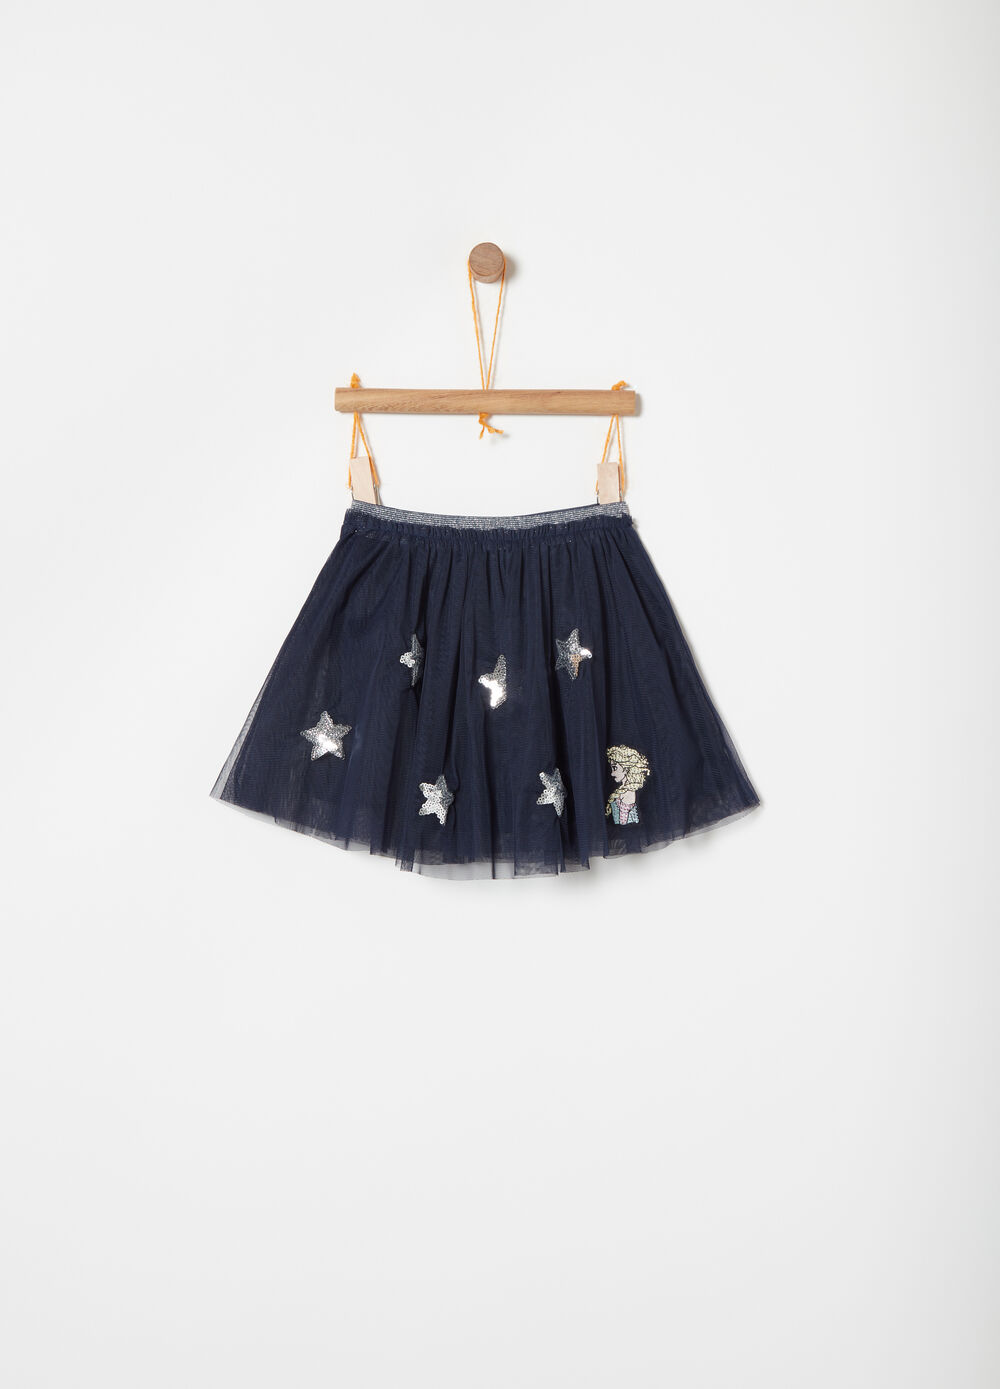 Tulle skirt with lurex and Frozen embroidery